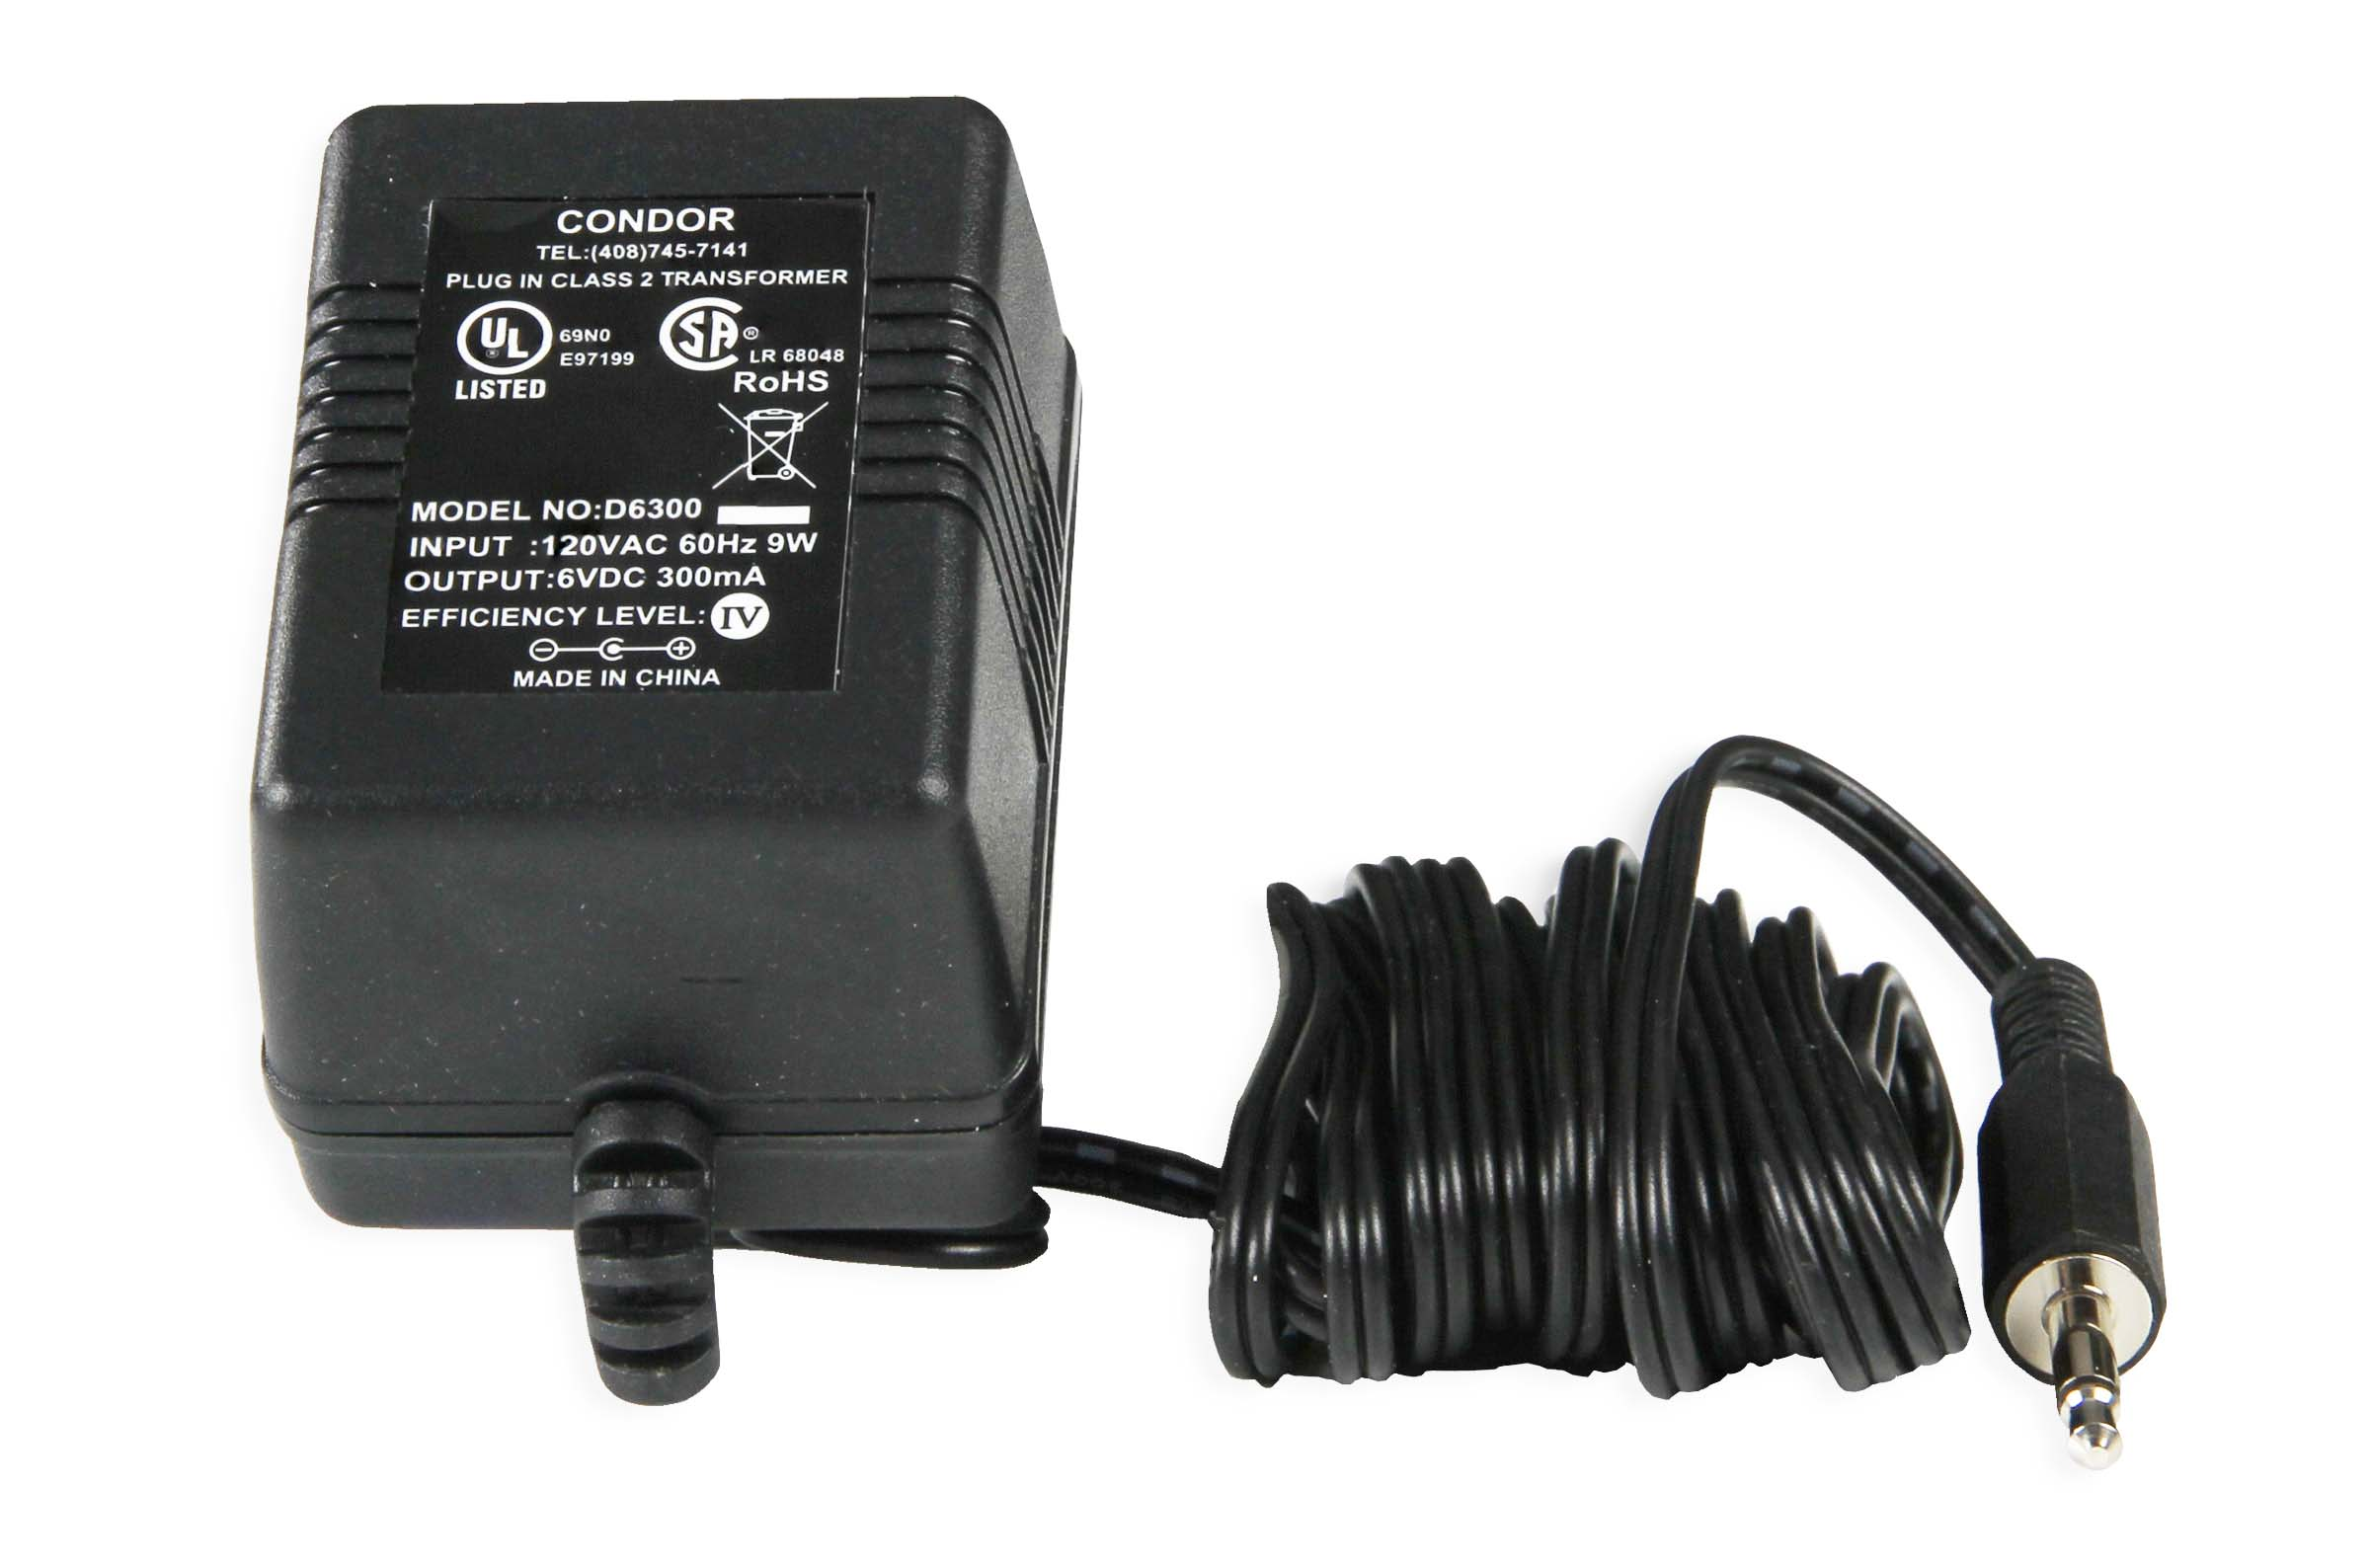 Global Specialties LD-1-PB-501 AC Adapter Photo